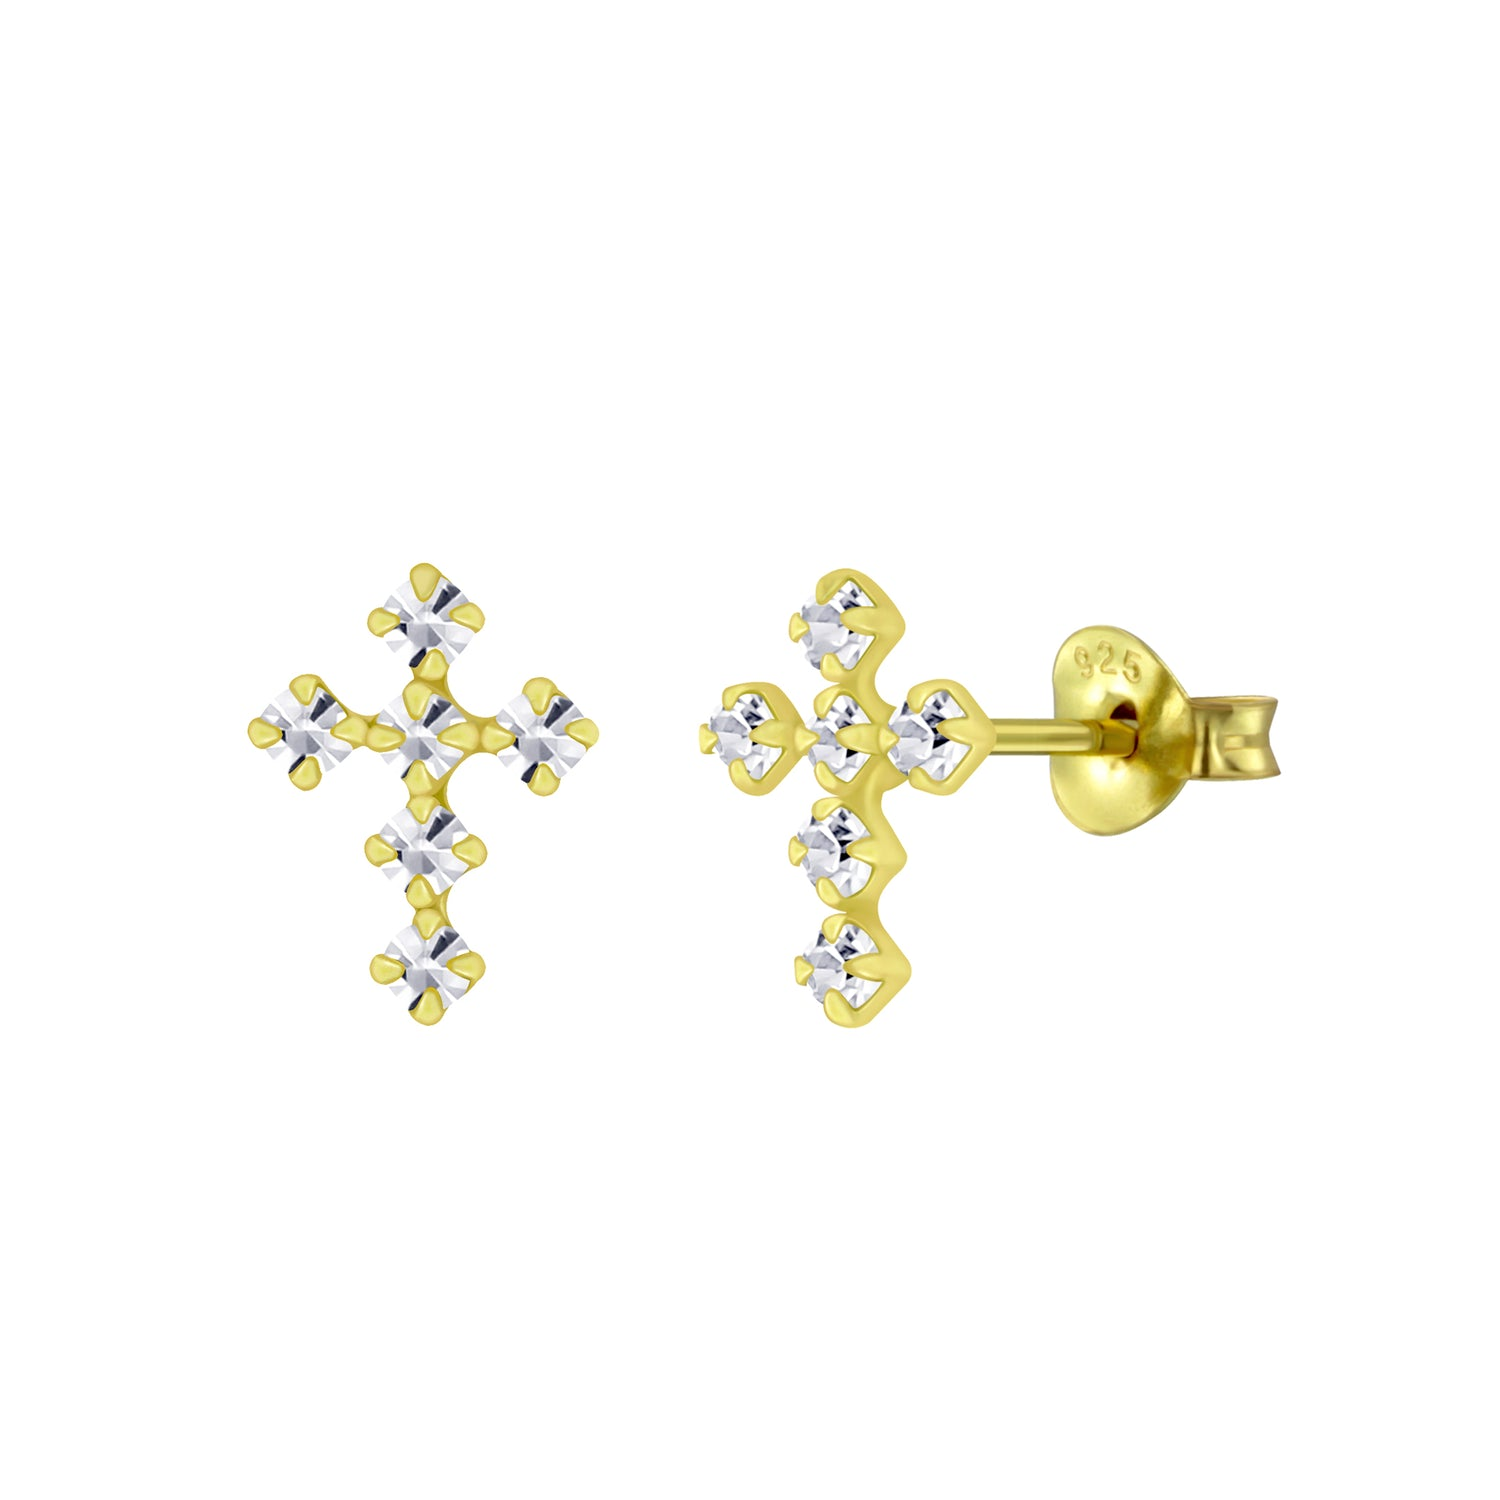 Stunning Cross Stud Earrings